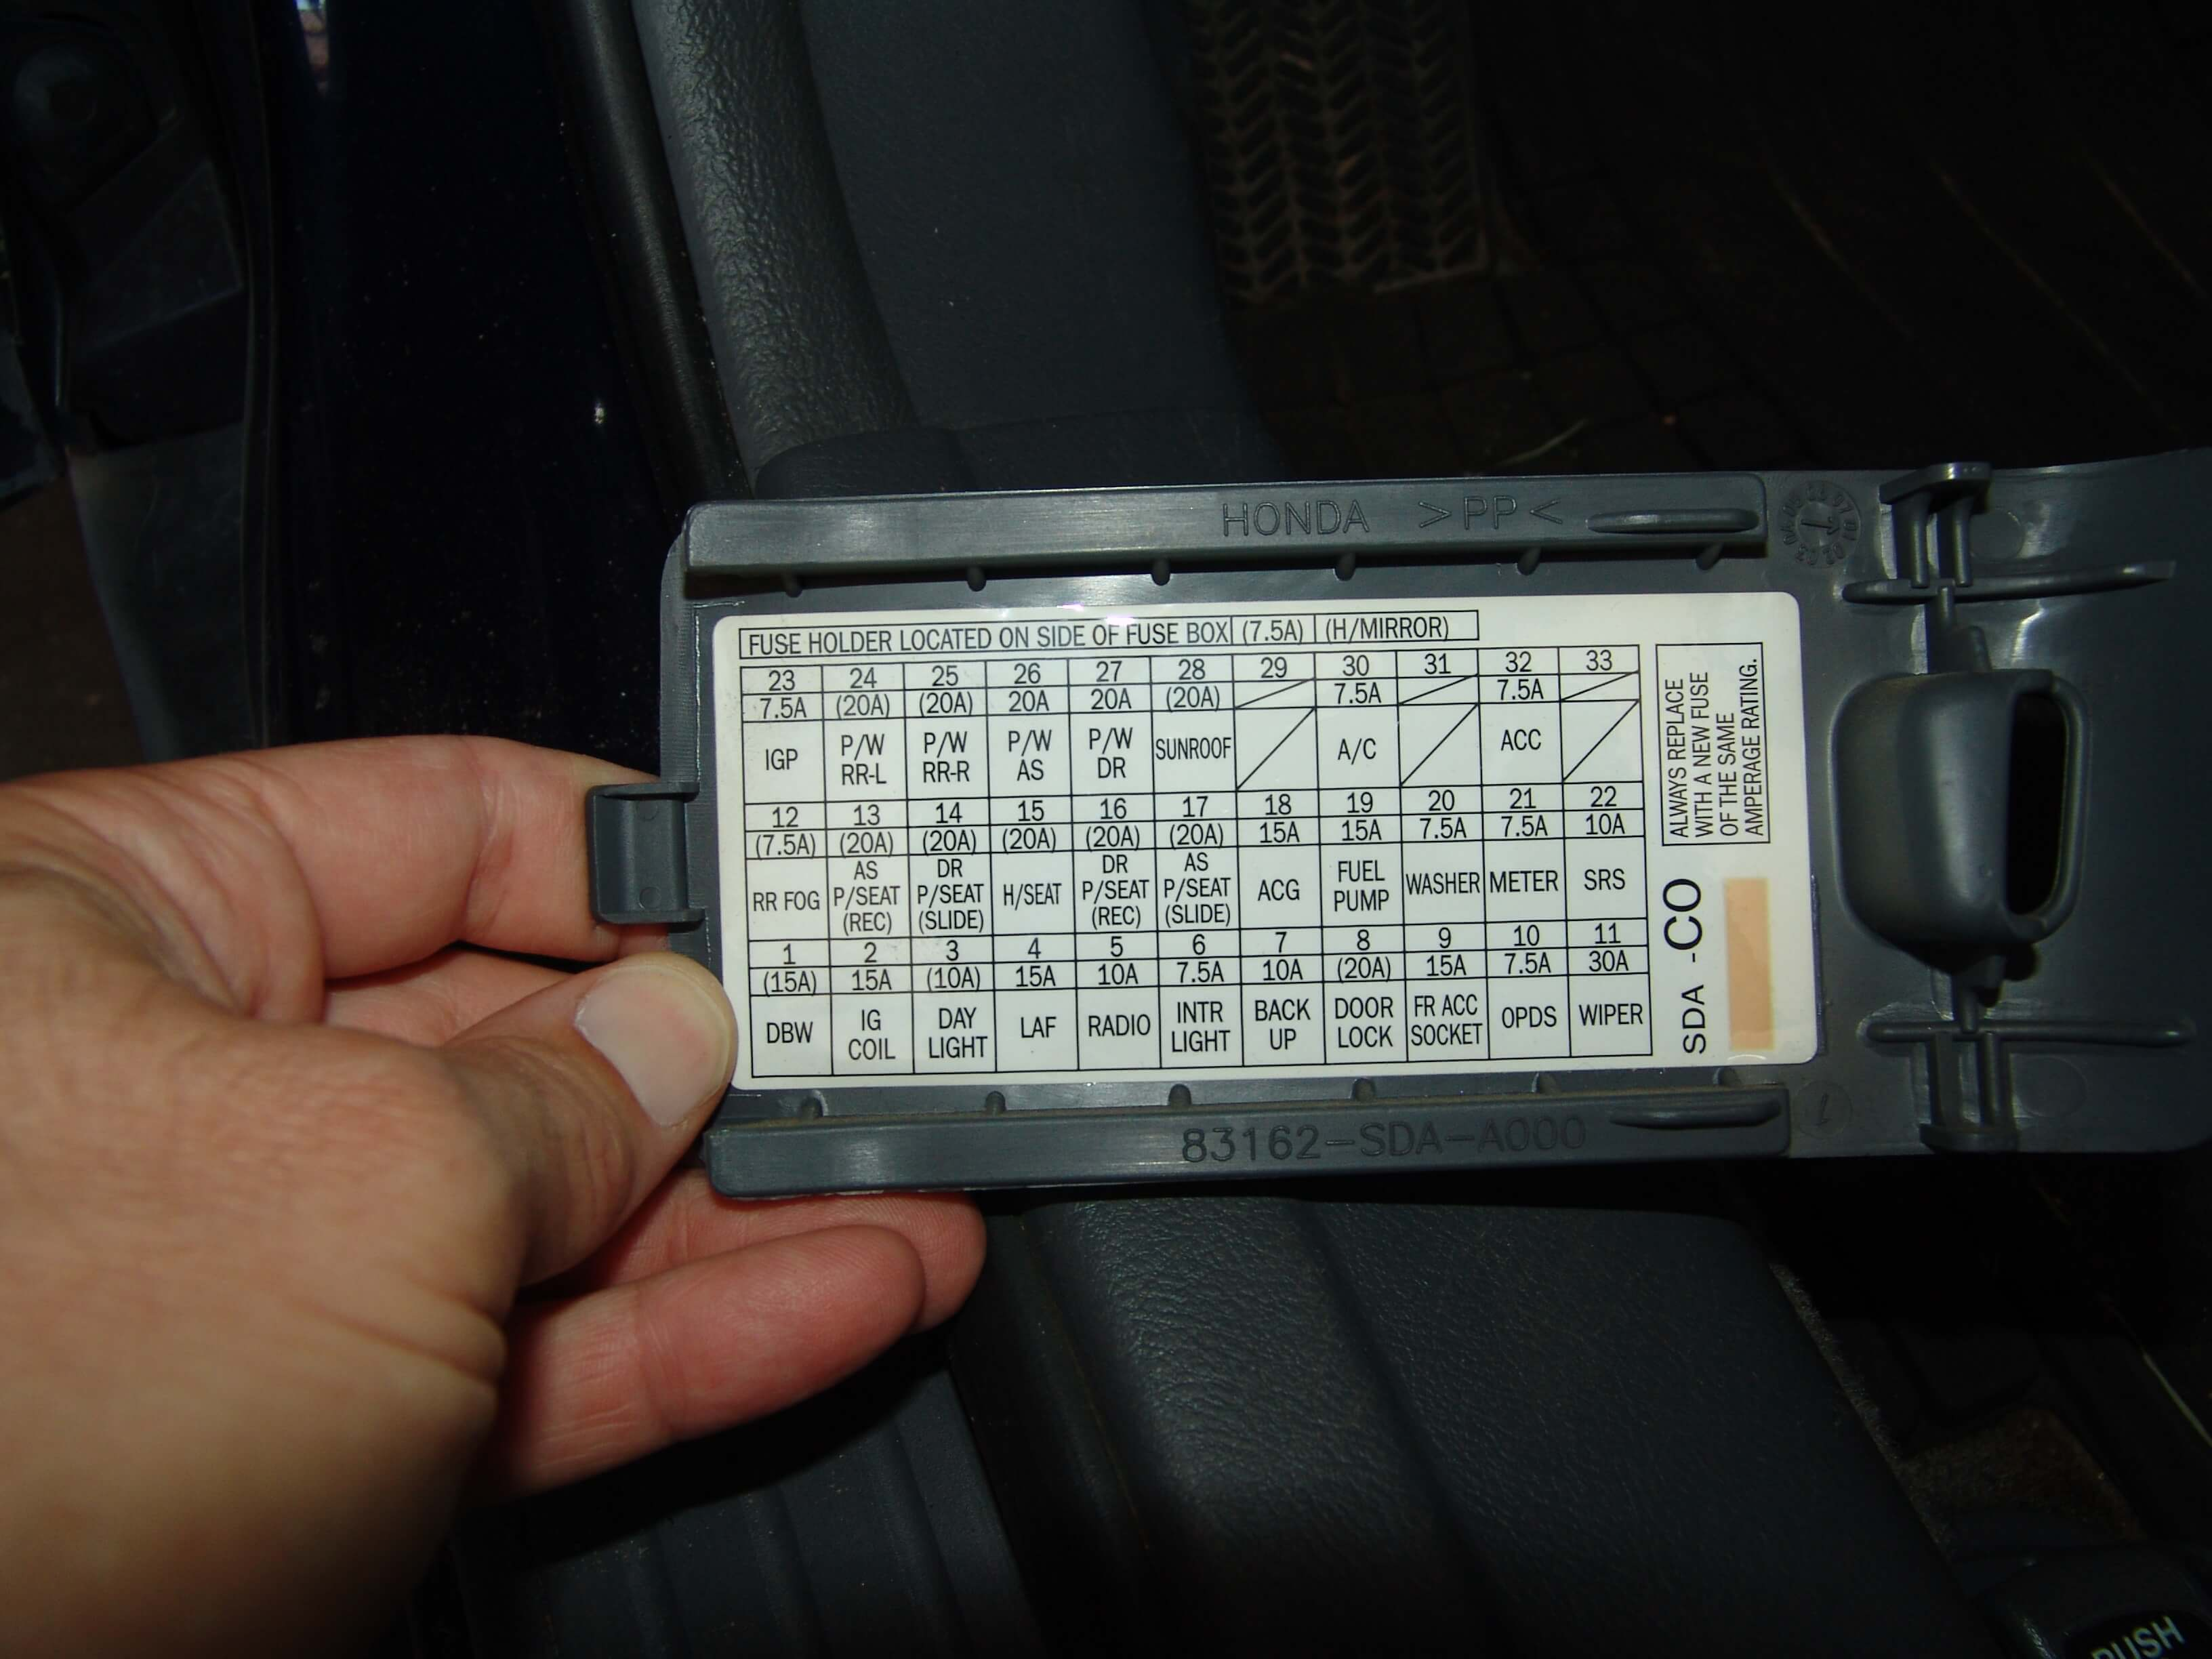 clicking noise from fuse box html with 2006 Honda Accord Passenger Power Windows Do Not Work on Suzuki Aerio Sx 2003 Fuse Box furthermore Monte Carlo Clicking Noise Fuse Box also Index moreover Does A Fuse Box Make Clock Ticking Noise additionally Monte Carlo Clicking Noise Fuse Box.